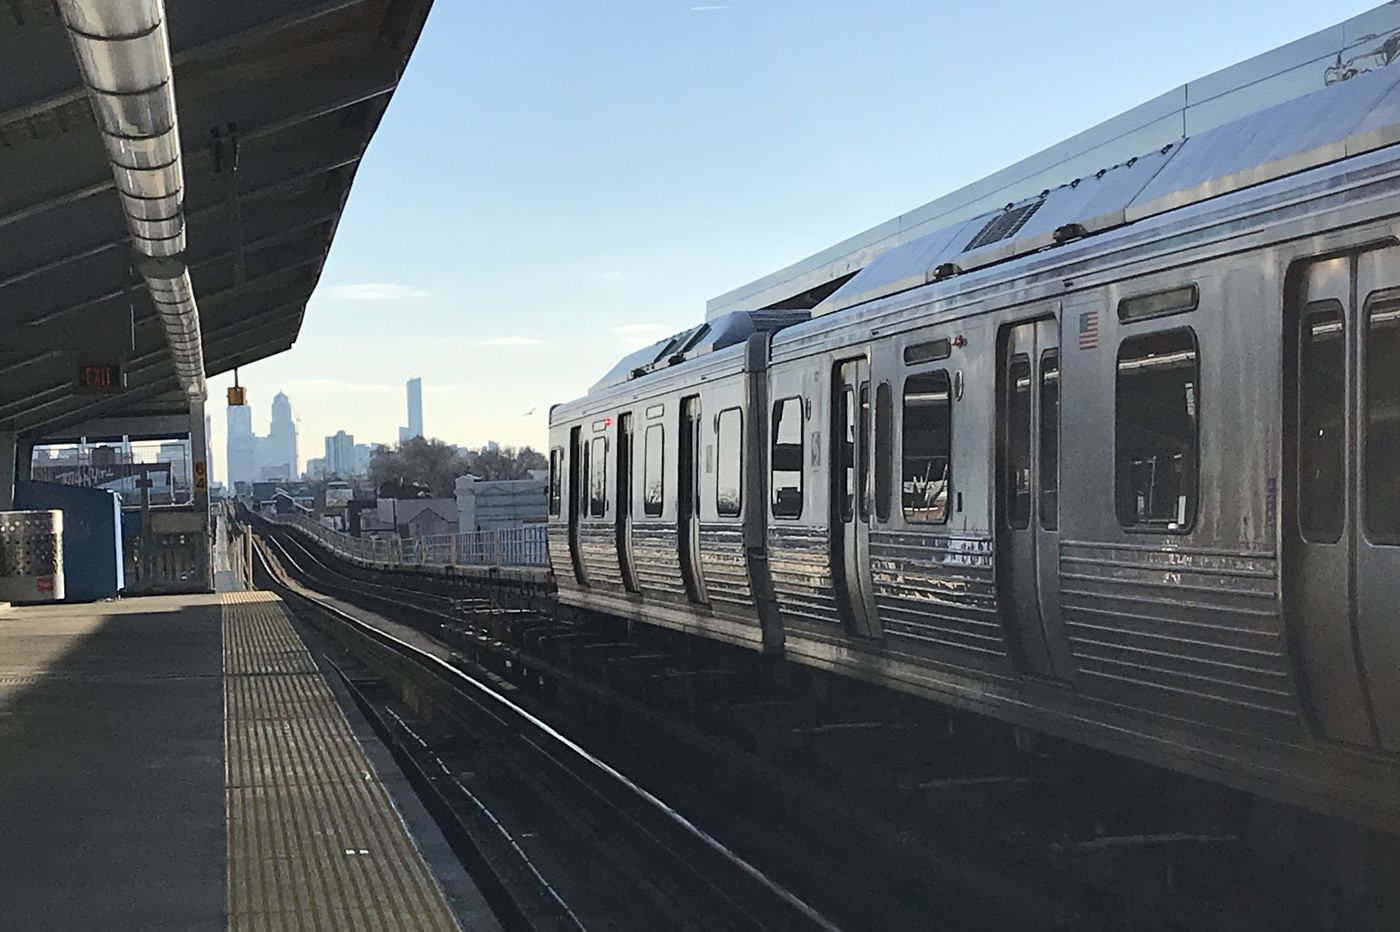 An existential threat looms for SEPTA and state transit this summer, as lawsuit threatens funding